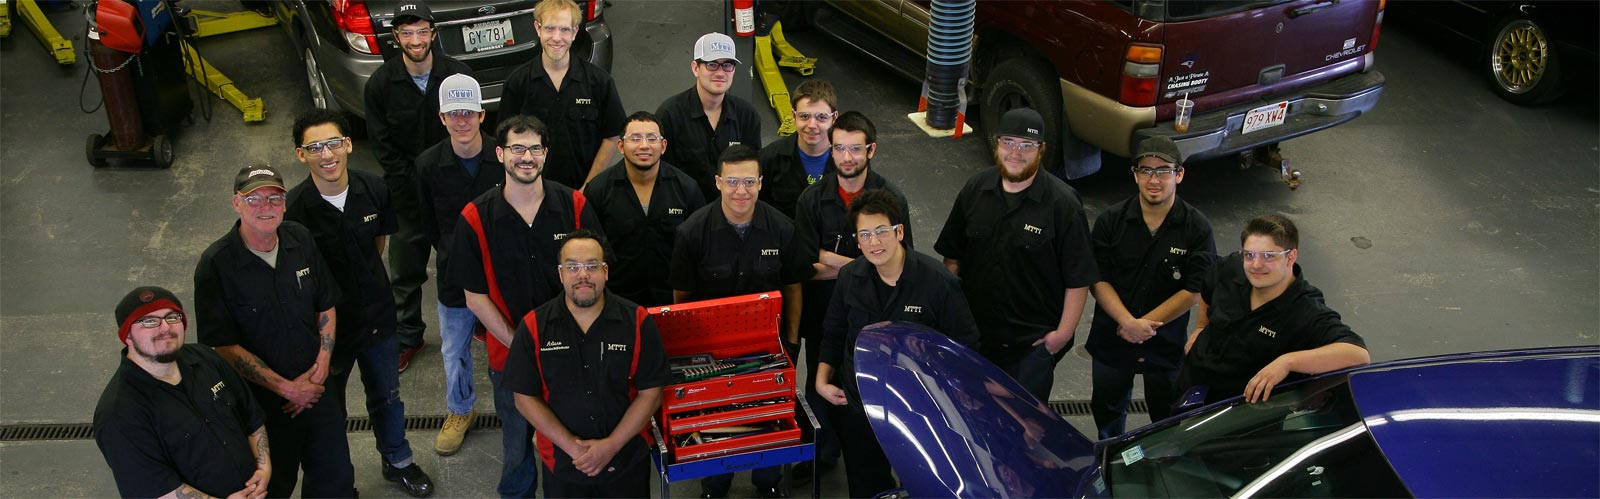 Class photo of 2016 Auto Mechanic students in the shop at MTTI